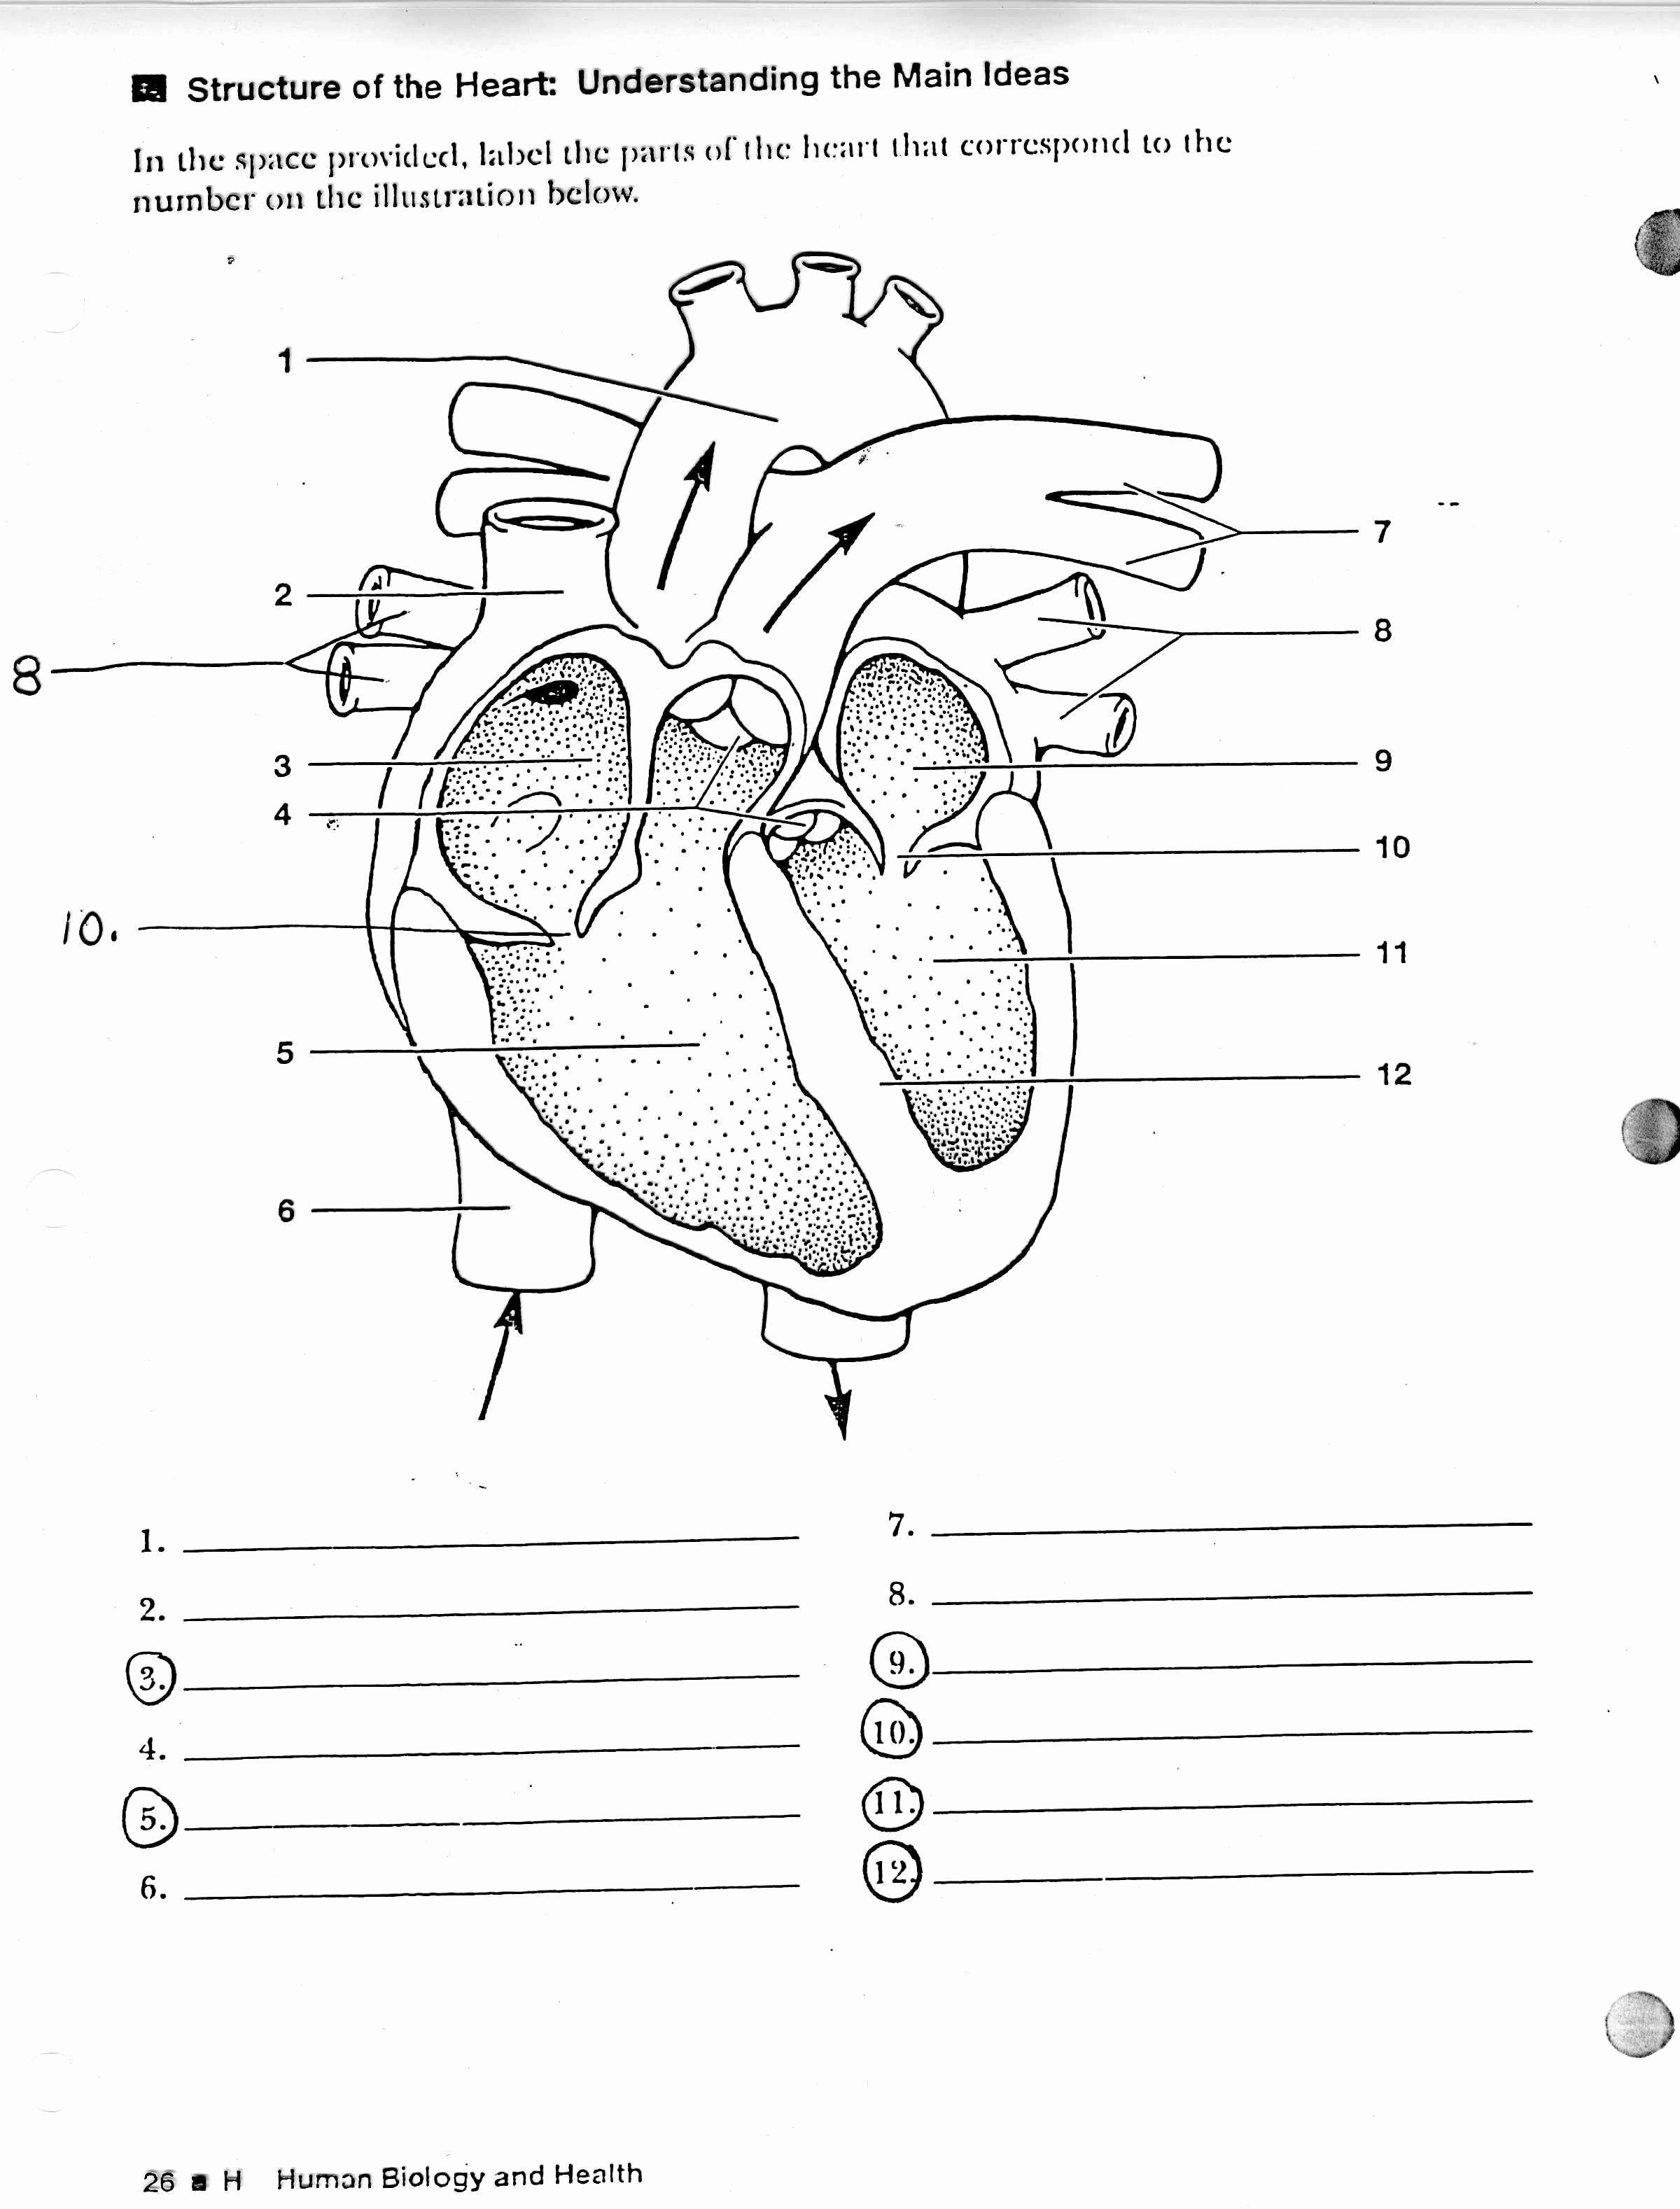 Teach Child How To Read Human Heart Printable Worksheets